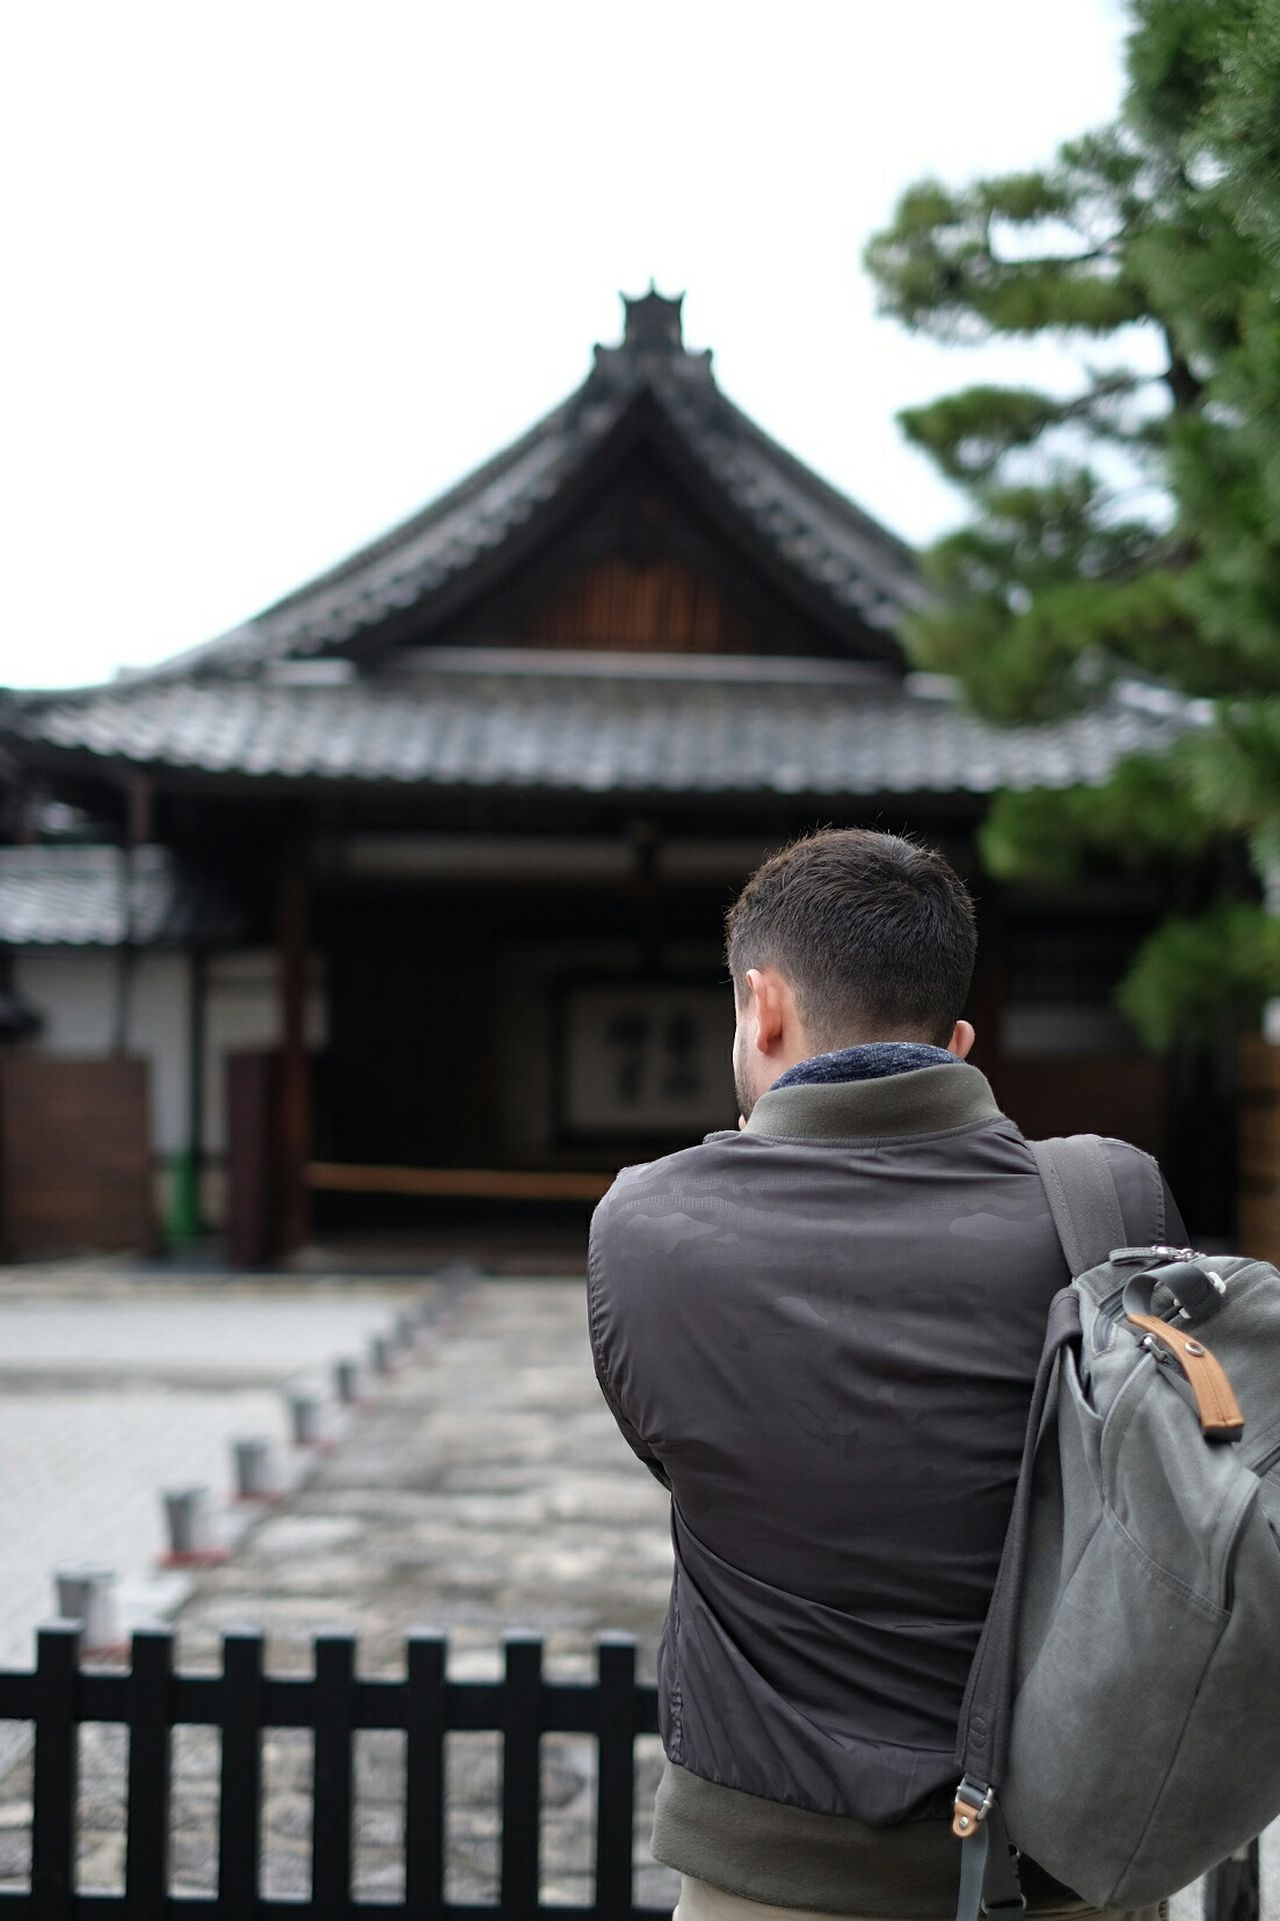 Make with love ♡ One Man Only Only Men Architecture Day One Person Somewhere Traveling Travel Kyoto Japan Fotography FUJIFILM X-T2 Fuji X-T1 Happiness